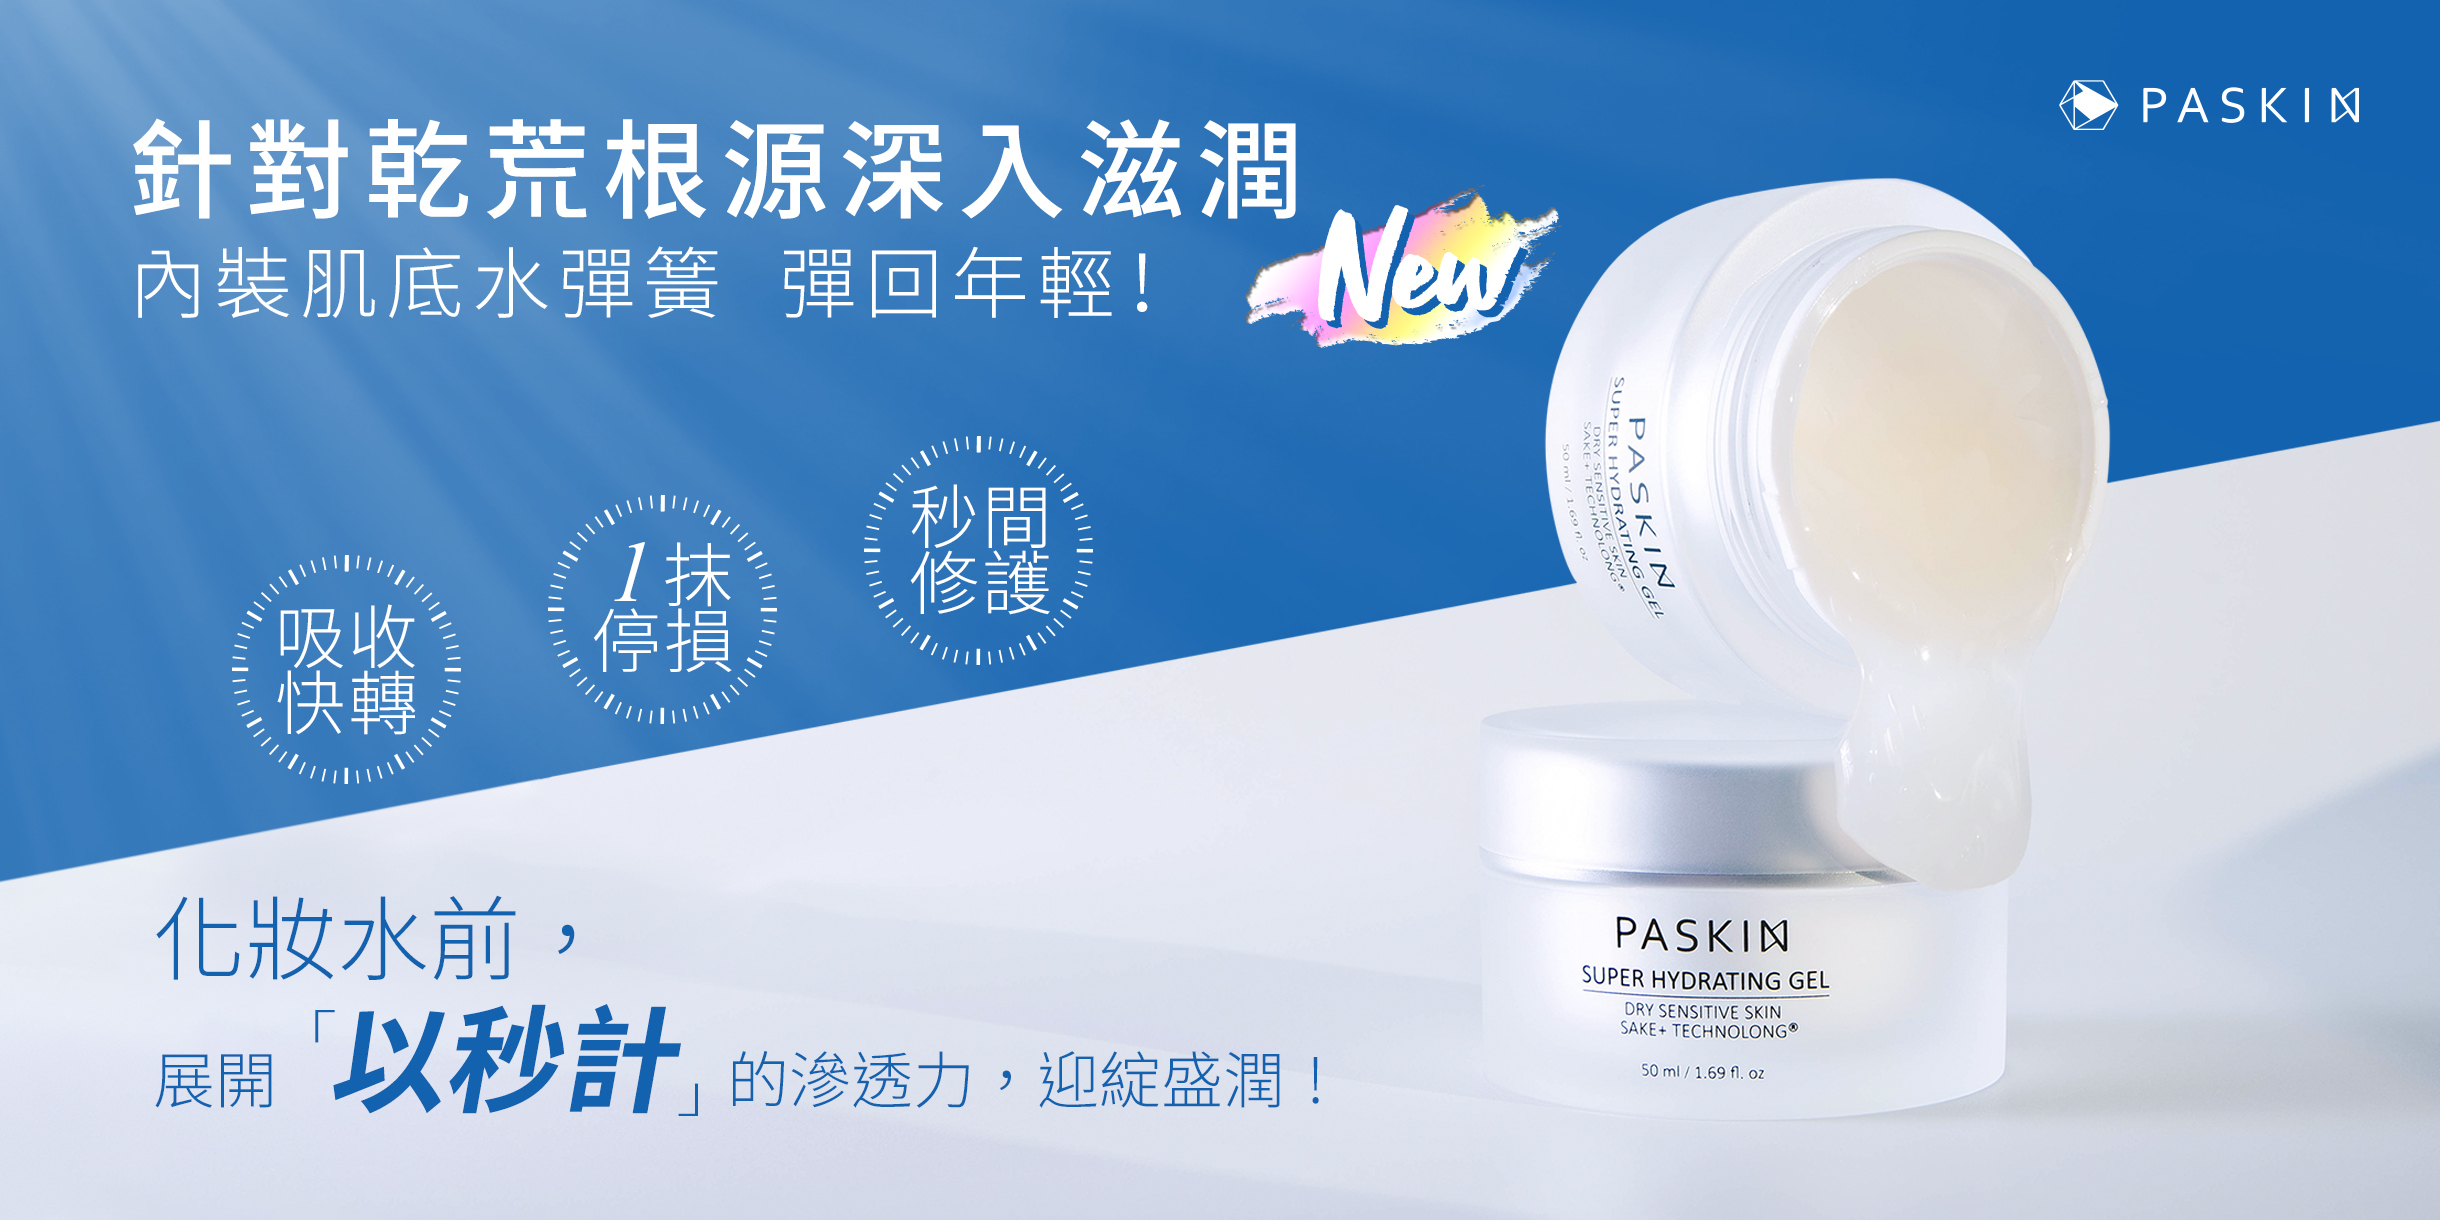 https://www.paskin.com.tw/products/super-hydrating-gel